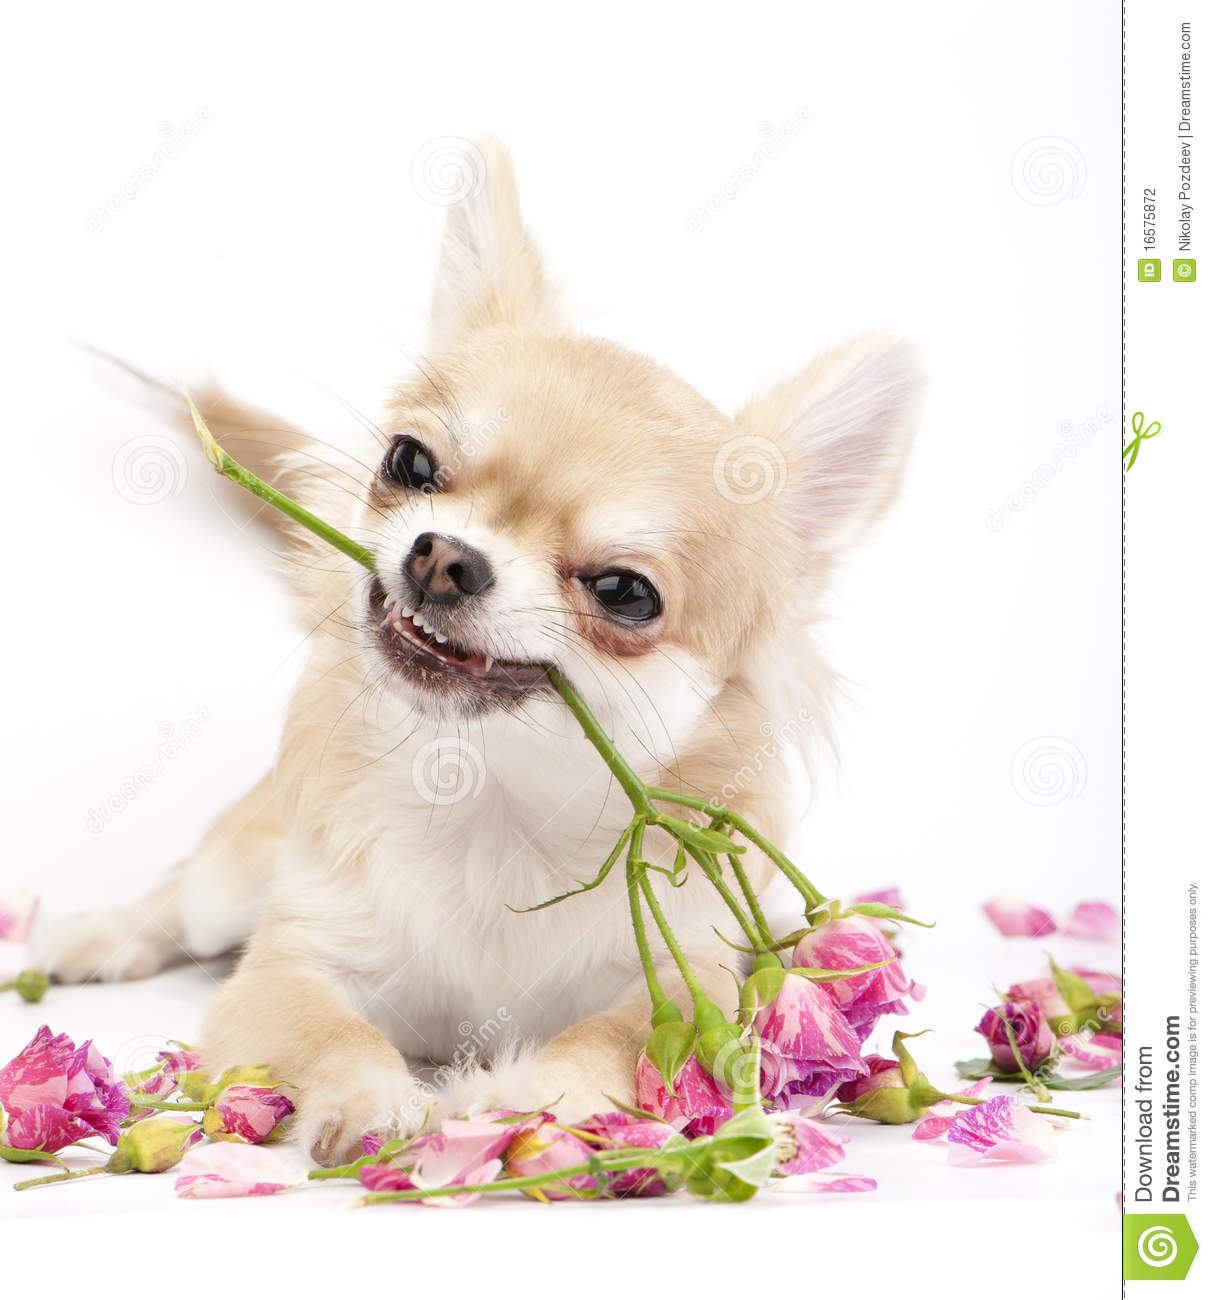 Pink Wallpaper With Cute Puppy Golden Retriever Smiling Chihuahua Puppy Giving Pink Roses Stock Photo